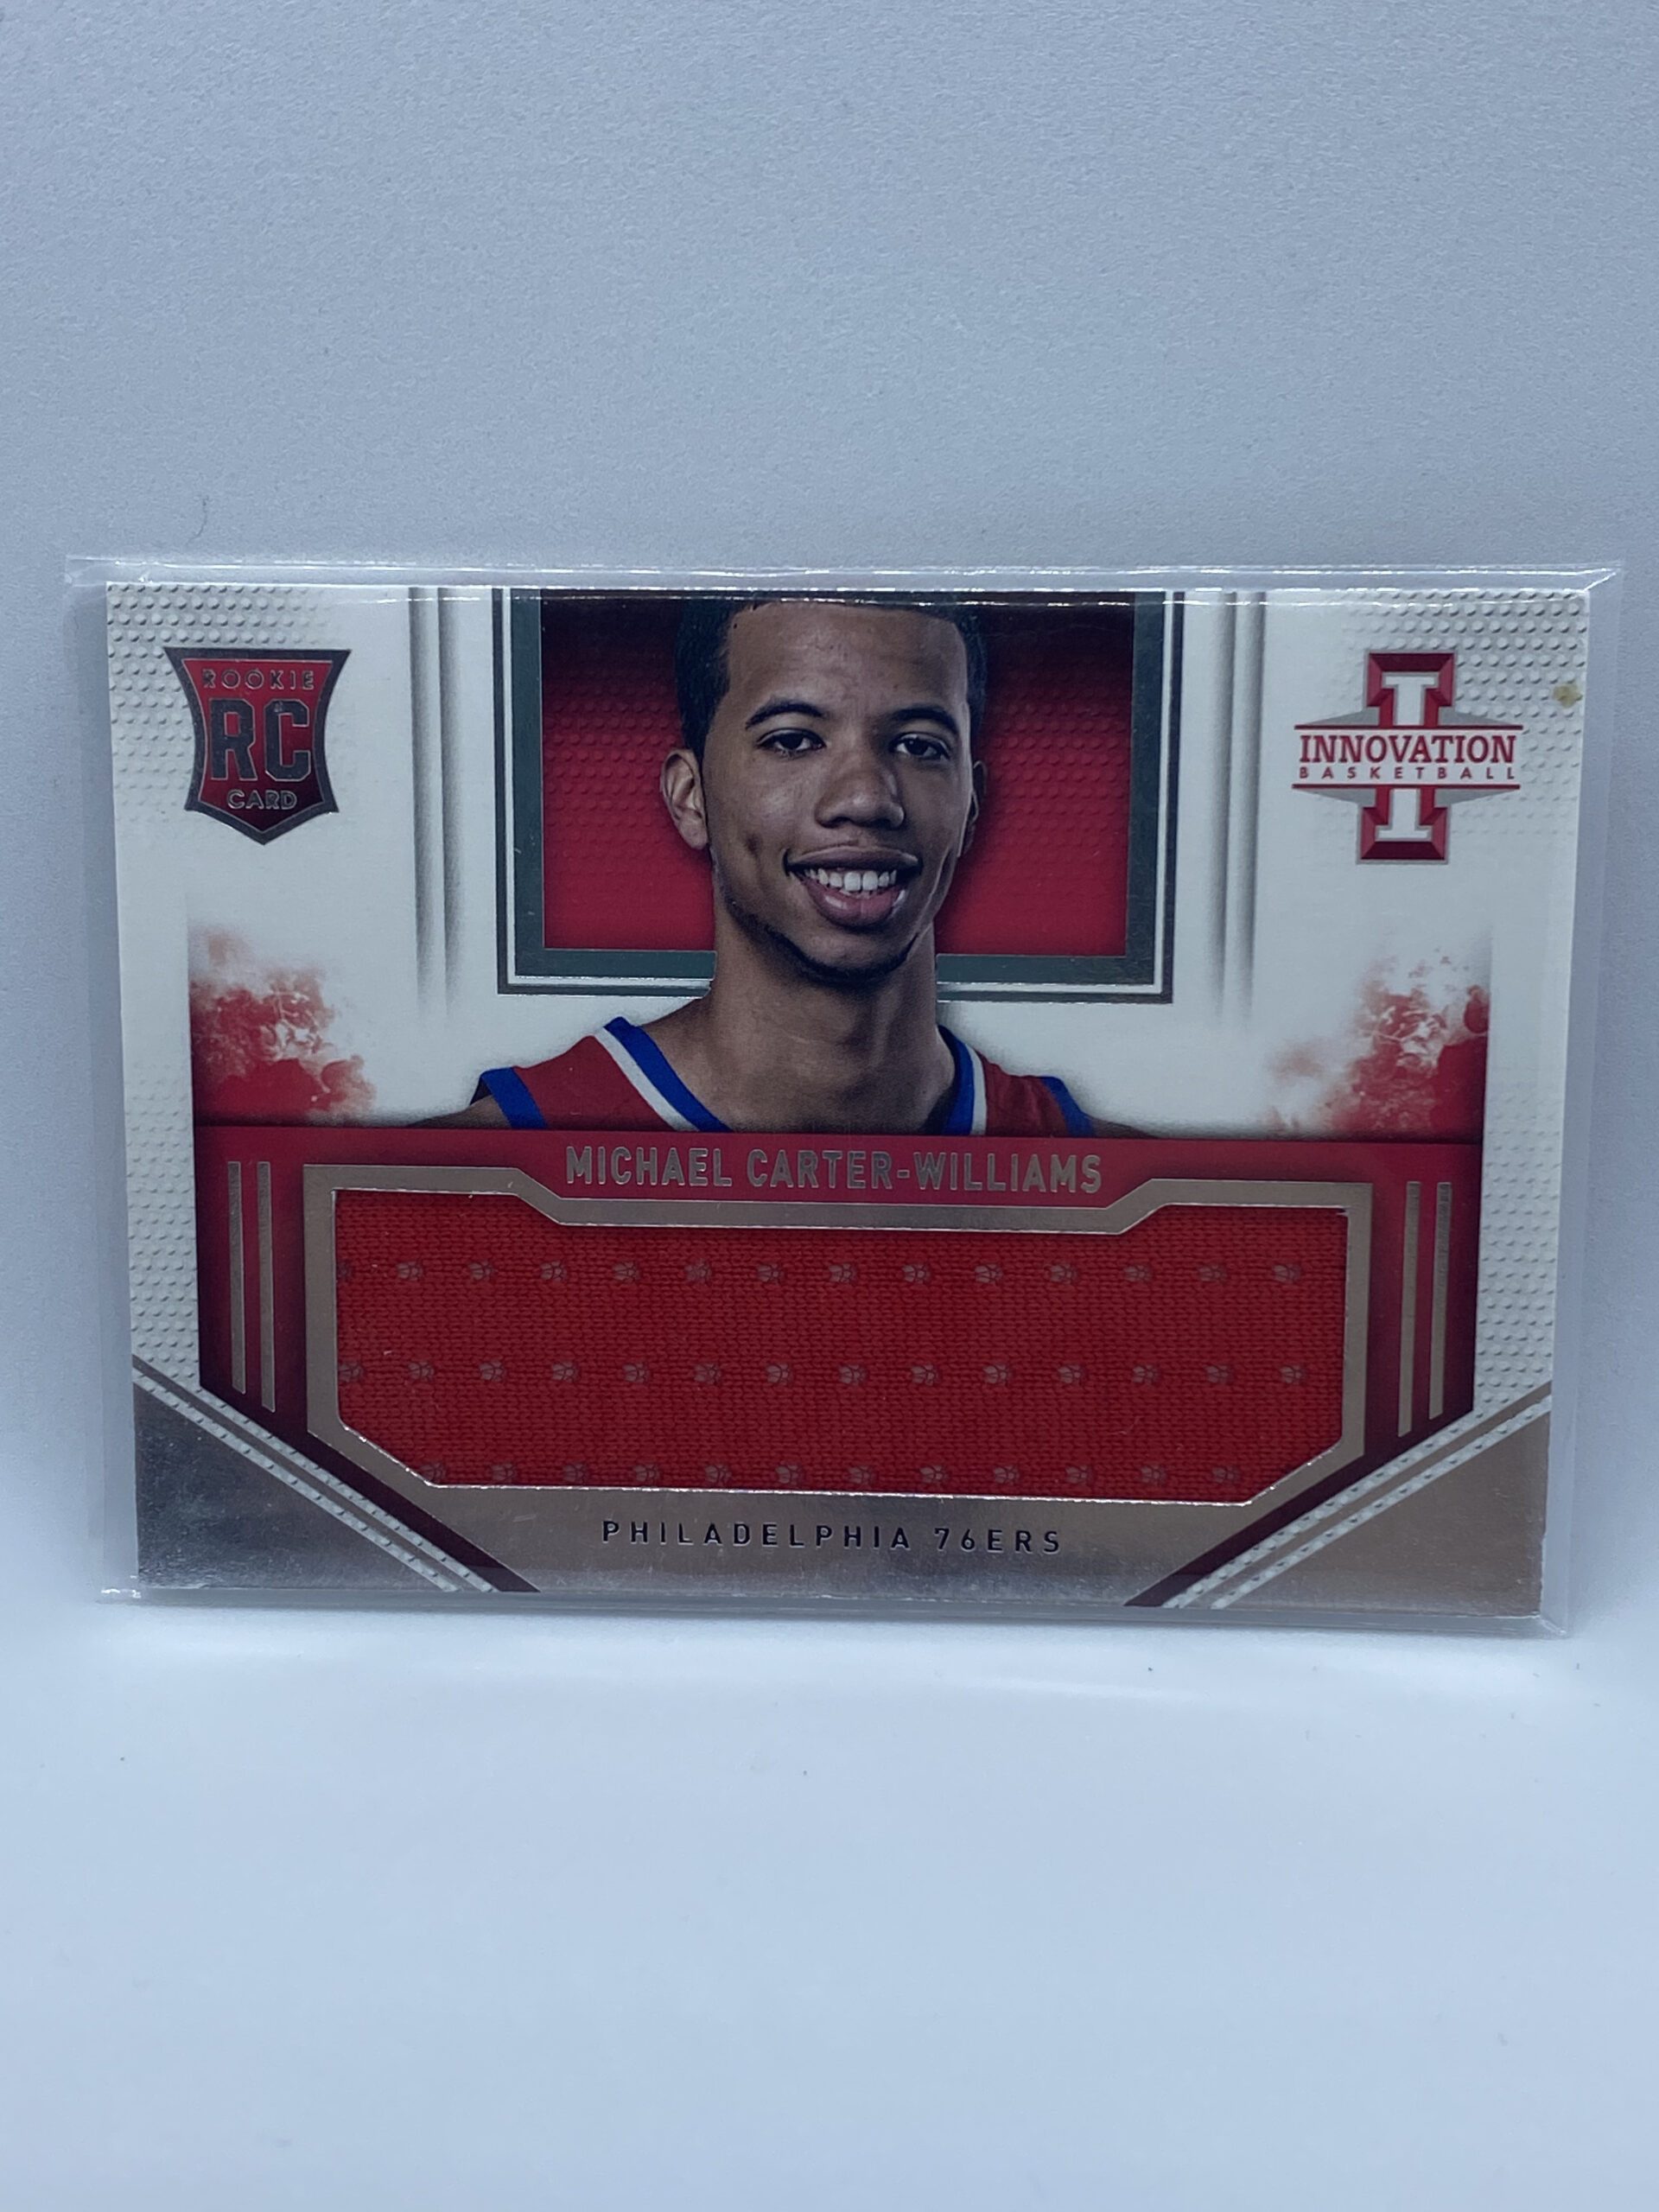 Michael Carter-Williams Innovation Basketball Rookie Patch